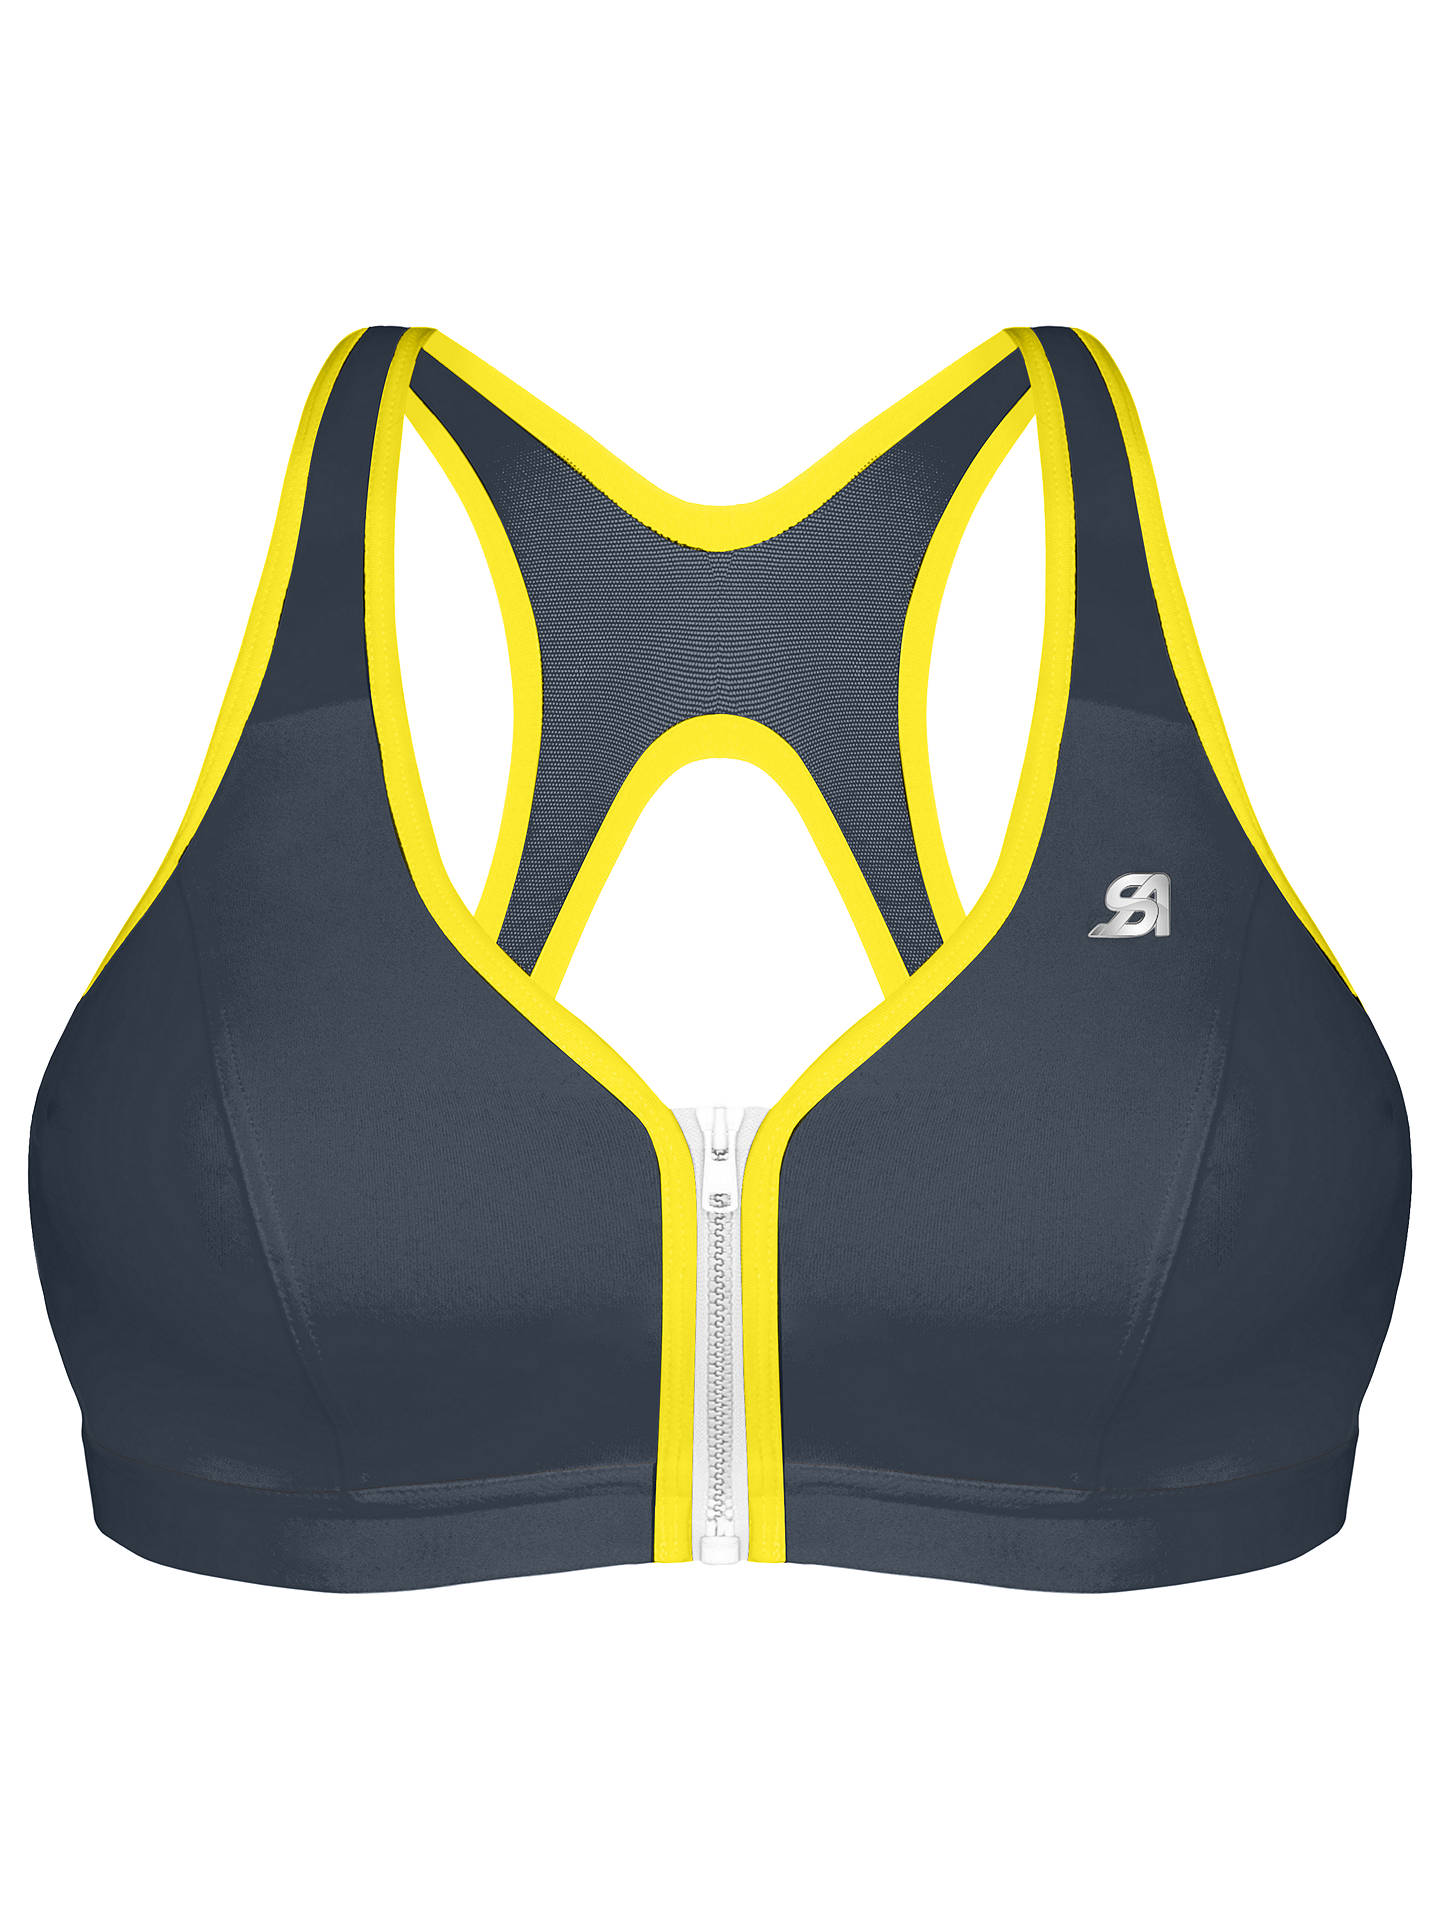 6cfc1e012f2 Buy Shock Absorber Active Zipped Plunge Non-Wired Sports Bra